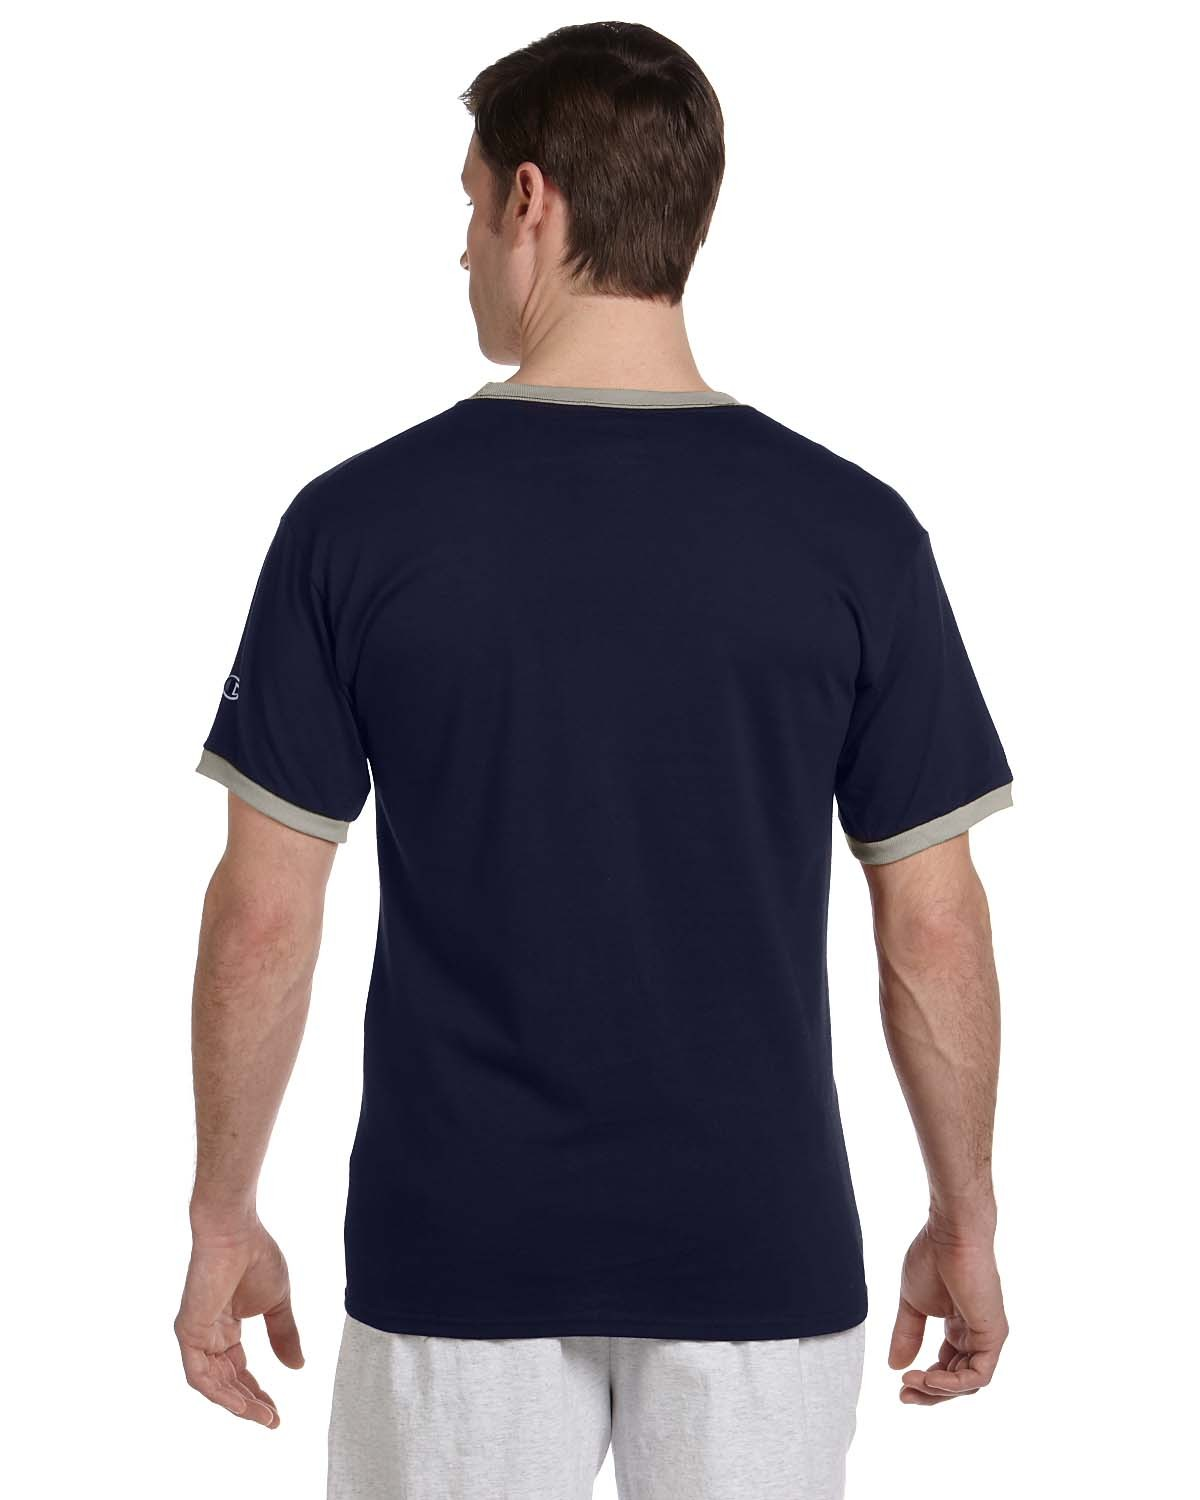 T1396 Champion NAVY/OXFORD GRY